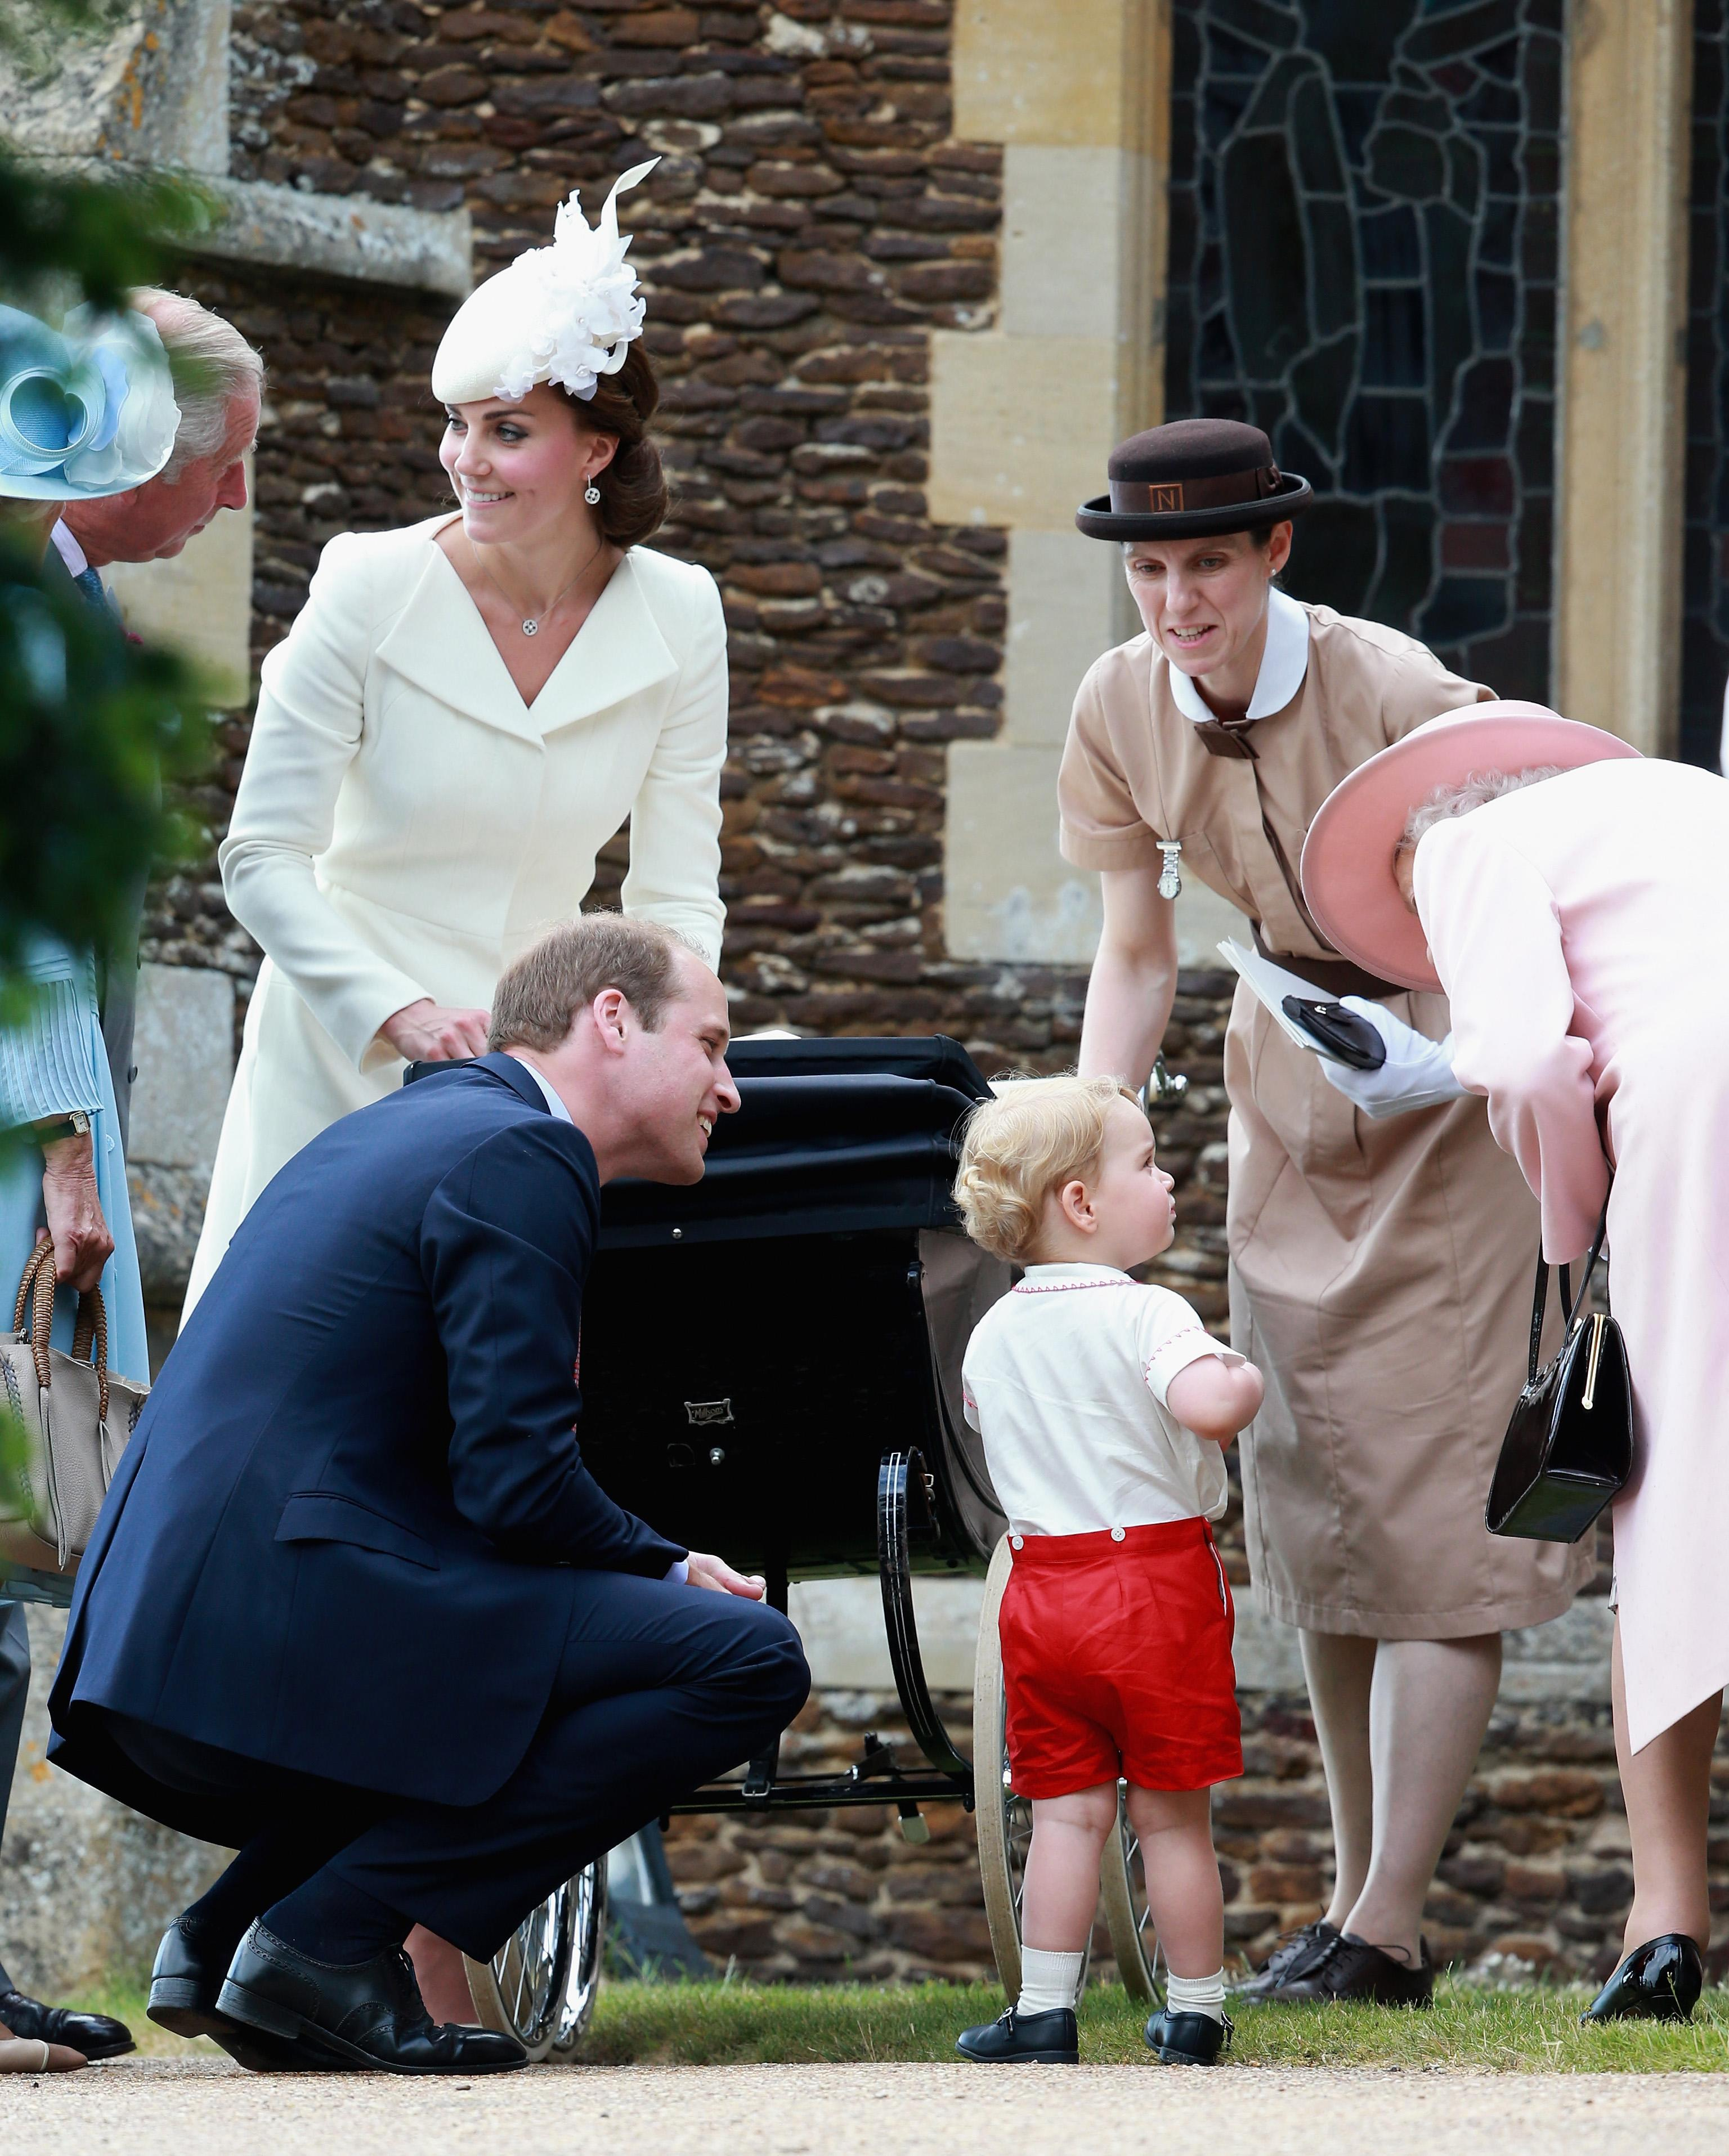 KING'S LYNN, ENGLAND - JULY 05: Catherine, Duchess of Cambridge, Prince William, Duke of Cambridge, Princess Charlotte of Cambridge and Prince George of Cambridge, Queen Elizabeth II and Prince George's nanny, Maria Teresa Turrion Borrallo leave the Church of St Mary Magdalene on the Sandringham Estate for the Christening of Princess Charlotte of Cambridge on July 5, 2015 in King's Lynn, England. (Photo by Chris Jackson/Getty Images)